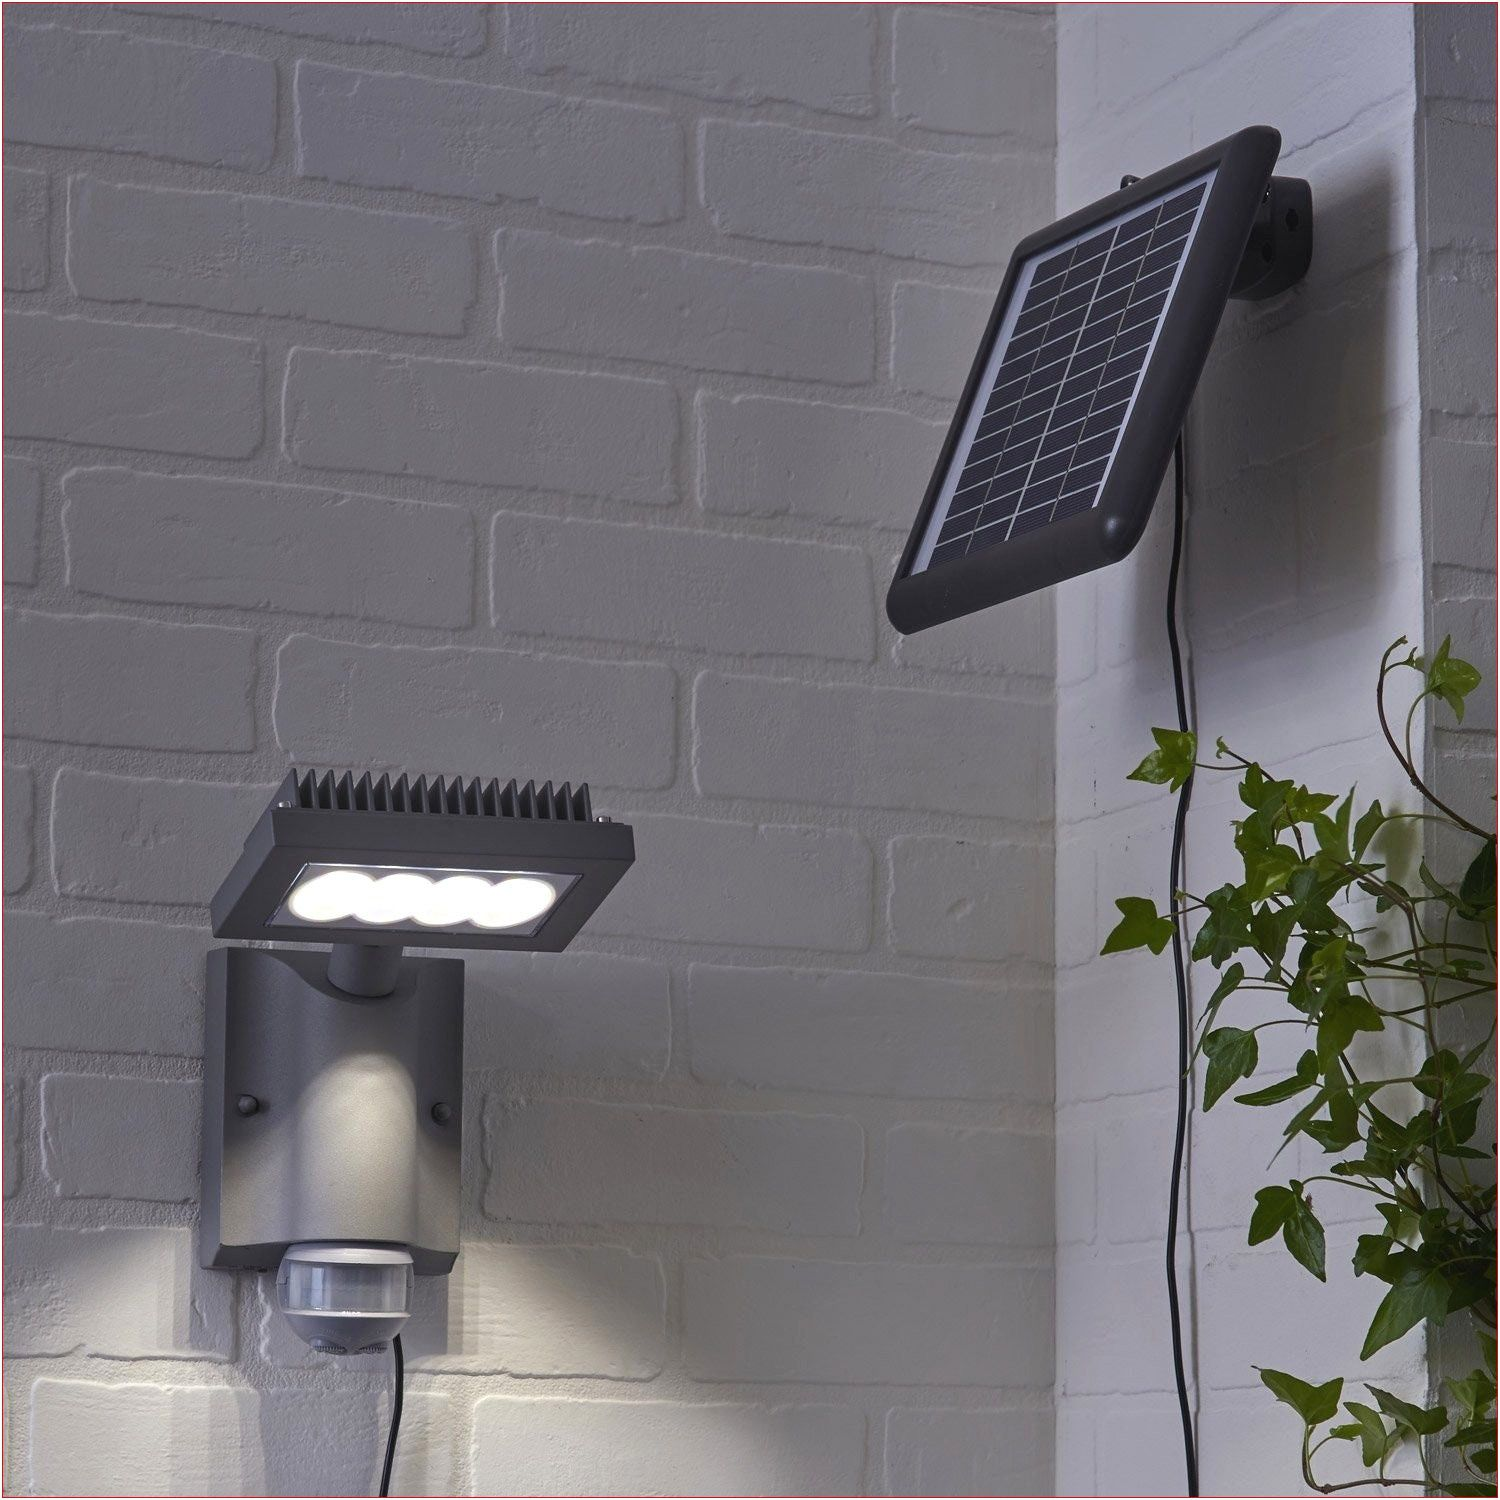 10 Primaire Lampe Solaire Leroy Merlin Pictures